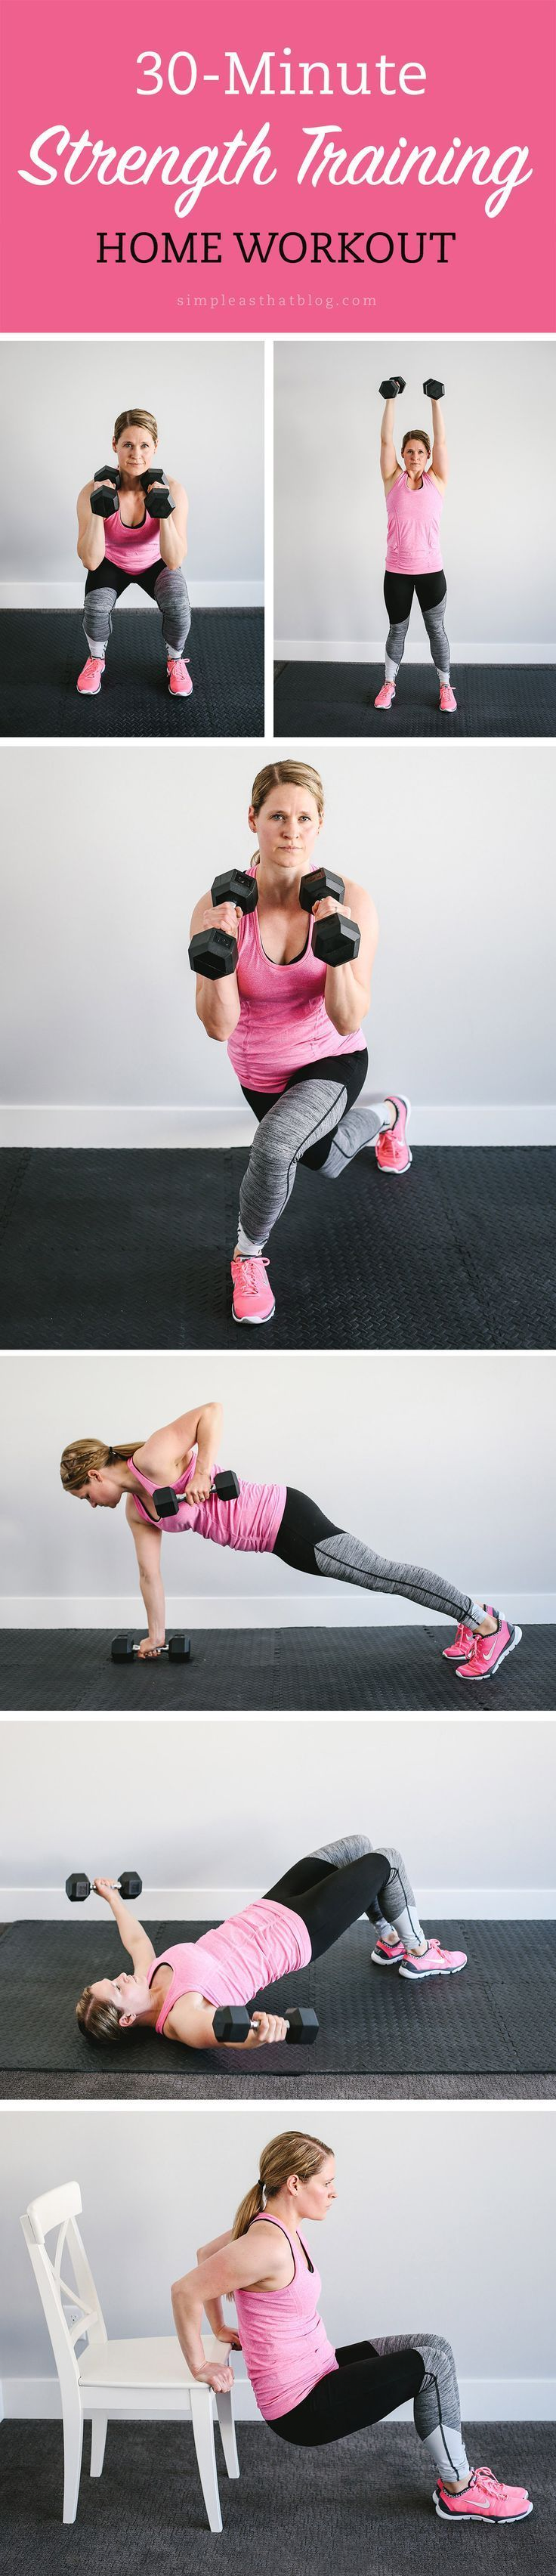 Interested in STRENGTH TRAINING at home but unsure where to start? Check out A Beginners Guide to Strength Training at Home for 5 tips on safe, effective weight training and a 30-minute total body workout you can do TODAY!